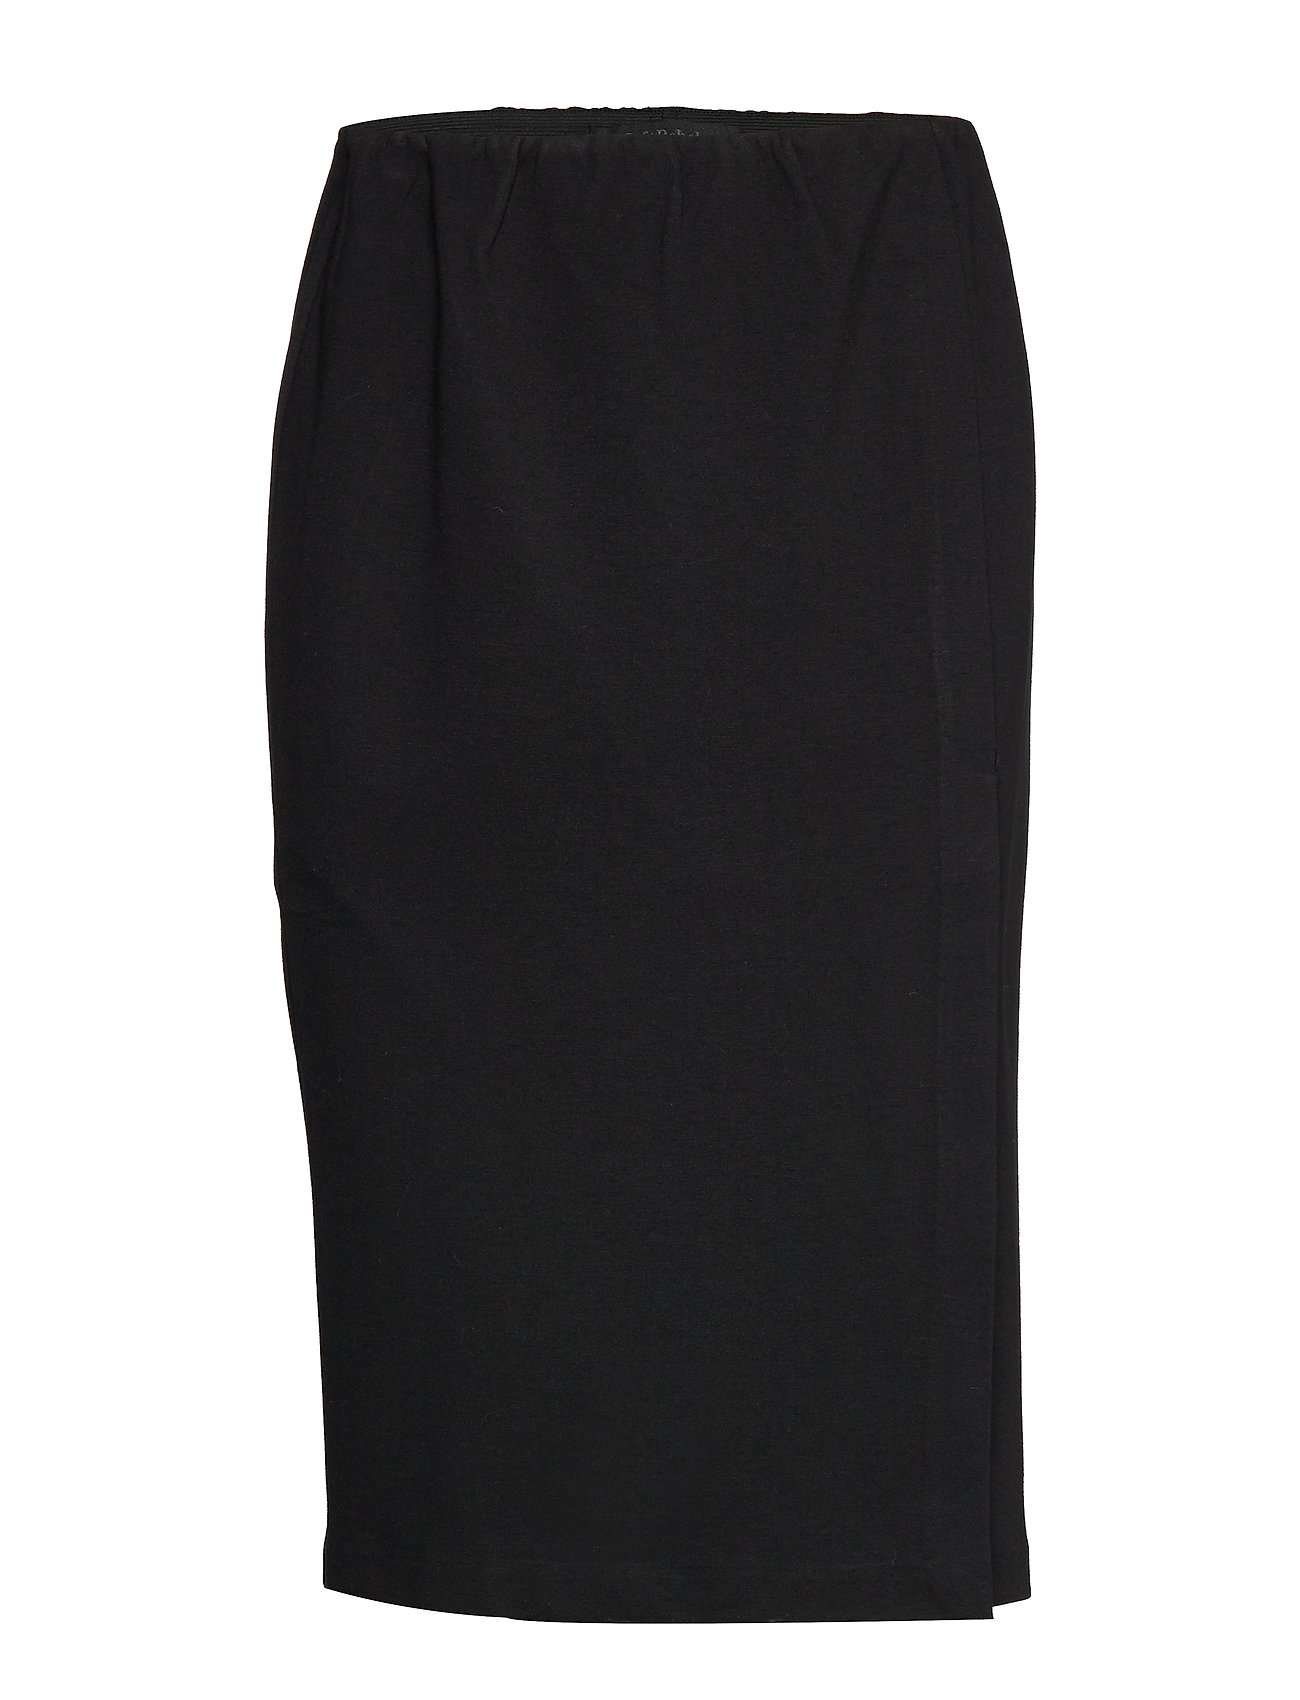 Image of Kalla Skirt Knælang Nederdel Sort Soft Rebels (3223703967)